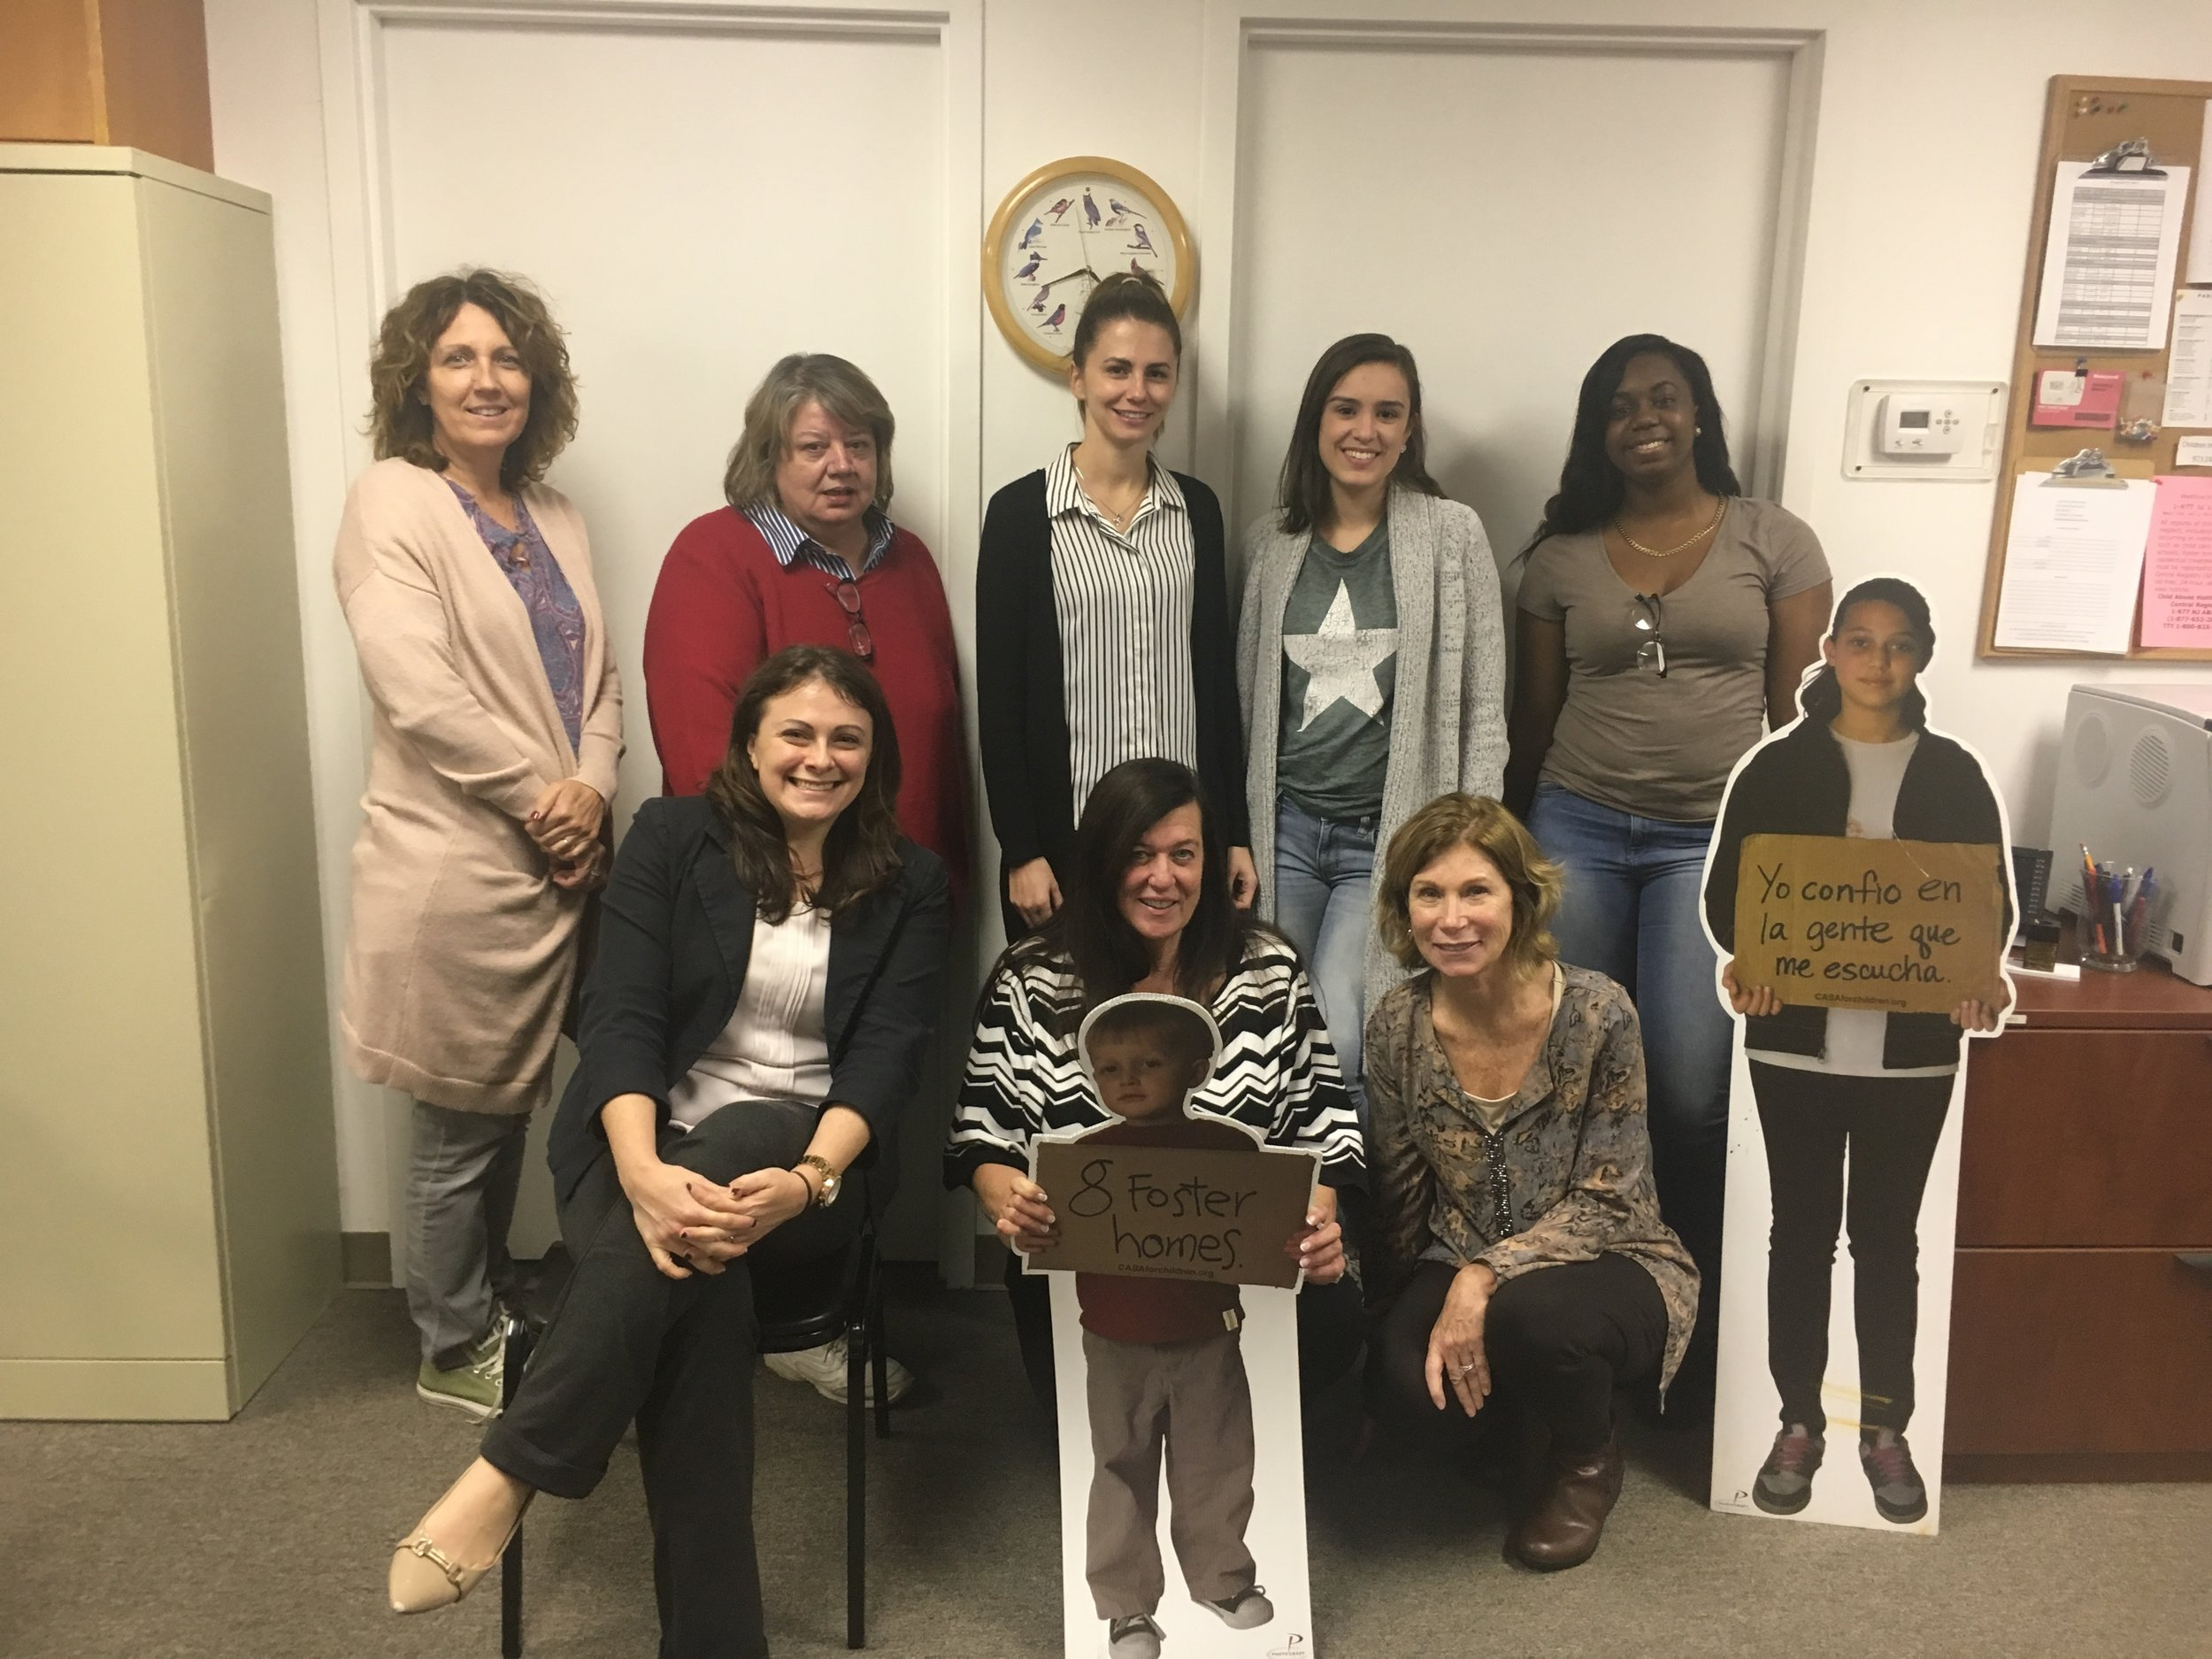 Last week, eleven people (a few were camera shy) completed the CASA volunteer training. Next up, they will be sworn in by the family court judge, and then Passaic County children in foster care will officially have 11 new advocates.  Congrats, everyone!